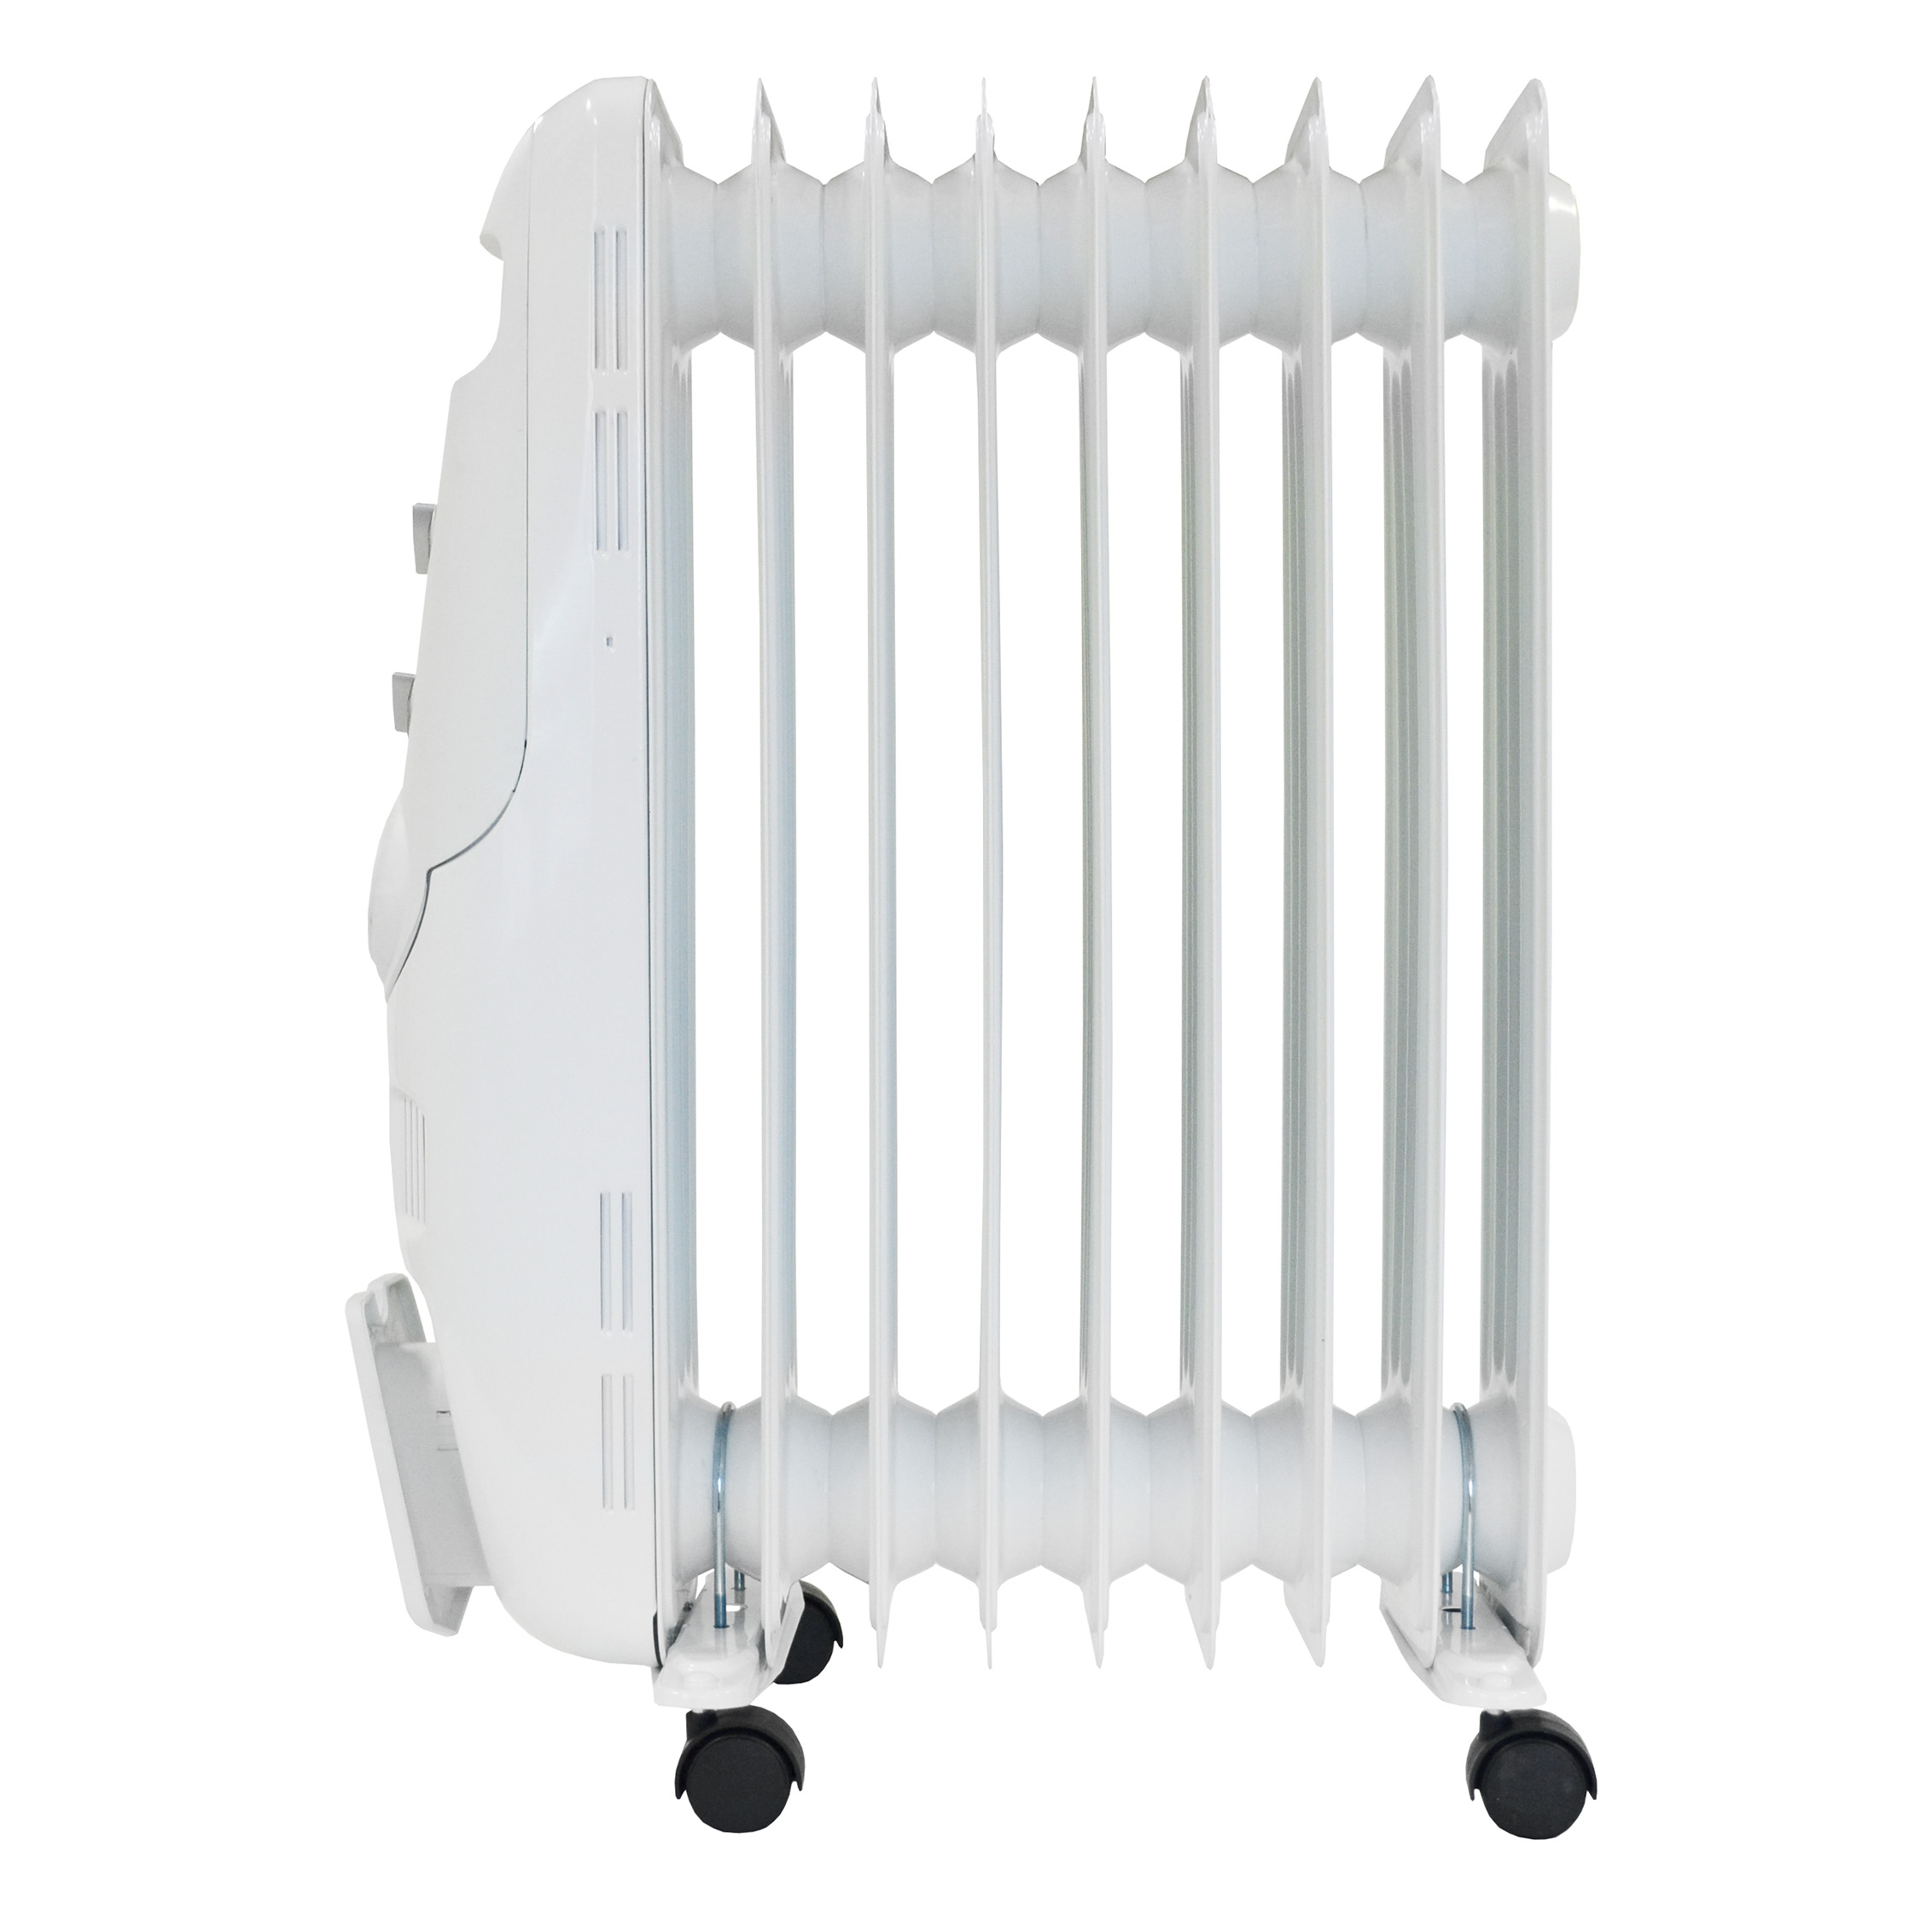 Oil Filled Radiators Igenix 2kW Oil Filled Radiator White Ref IG2600